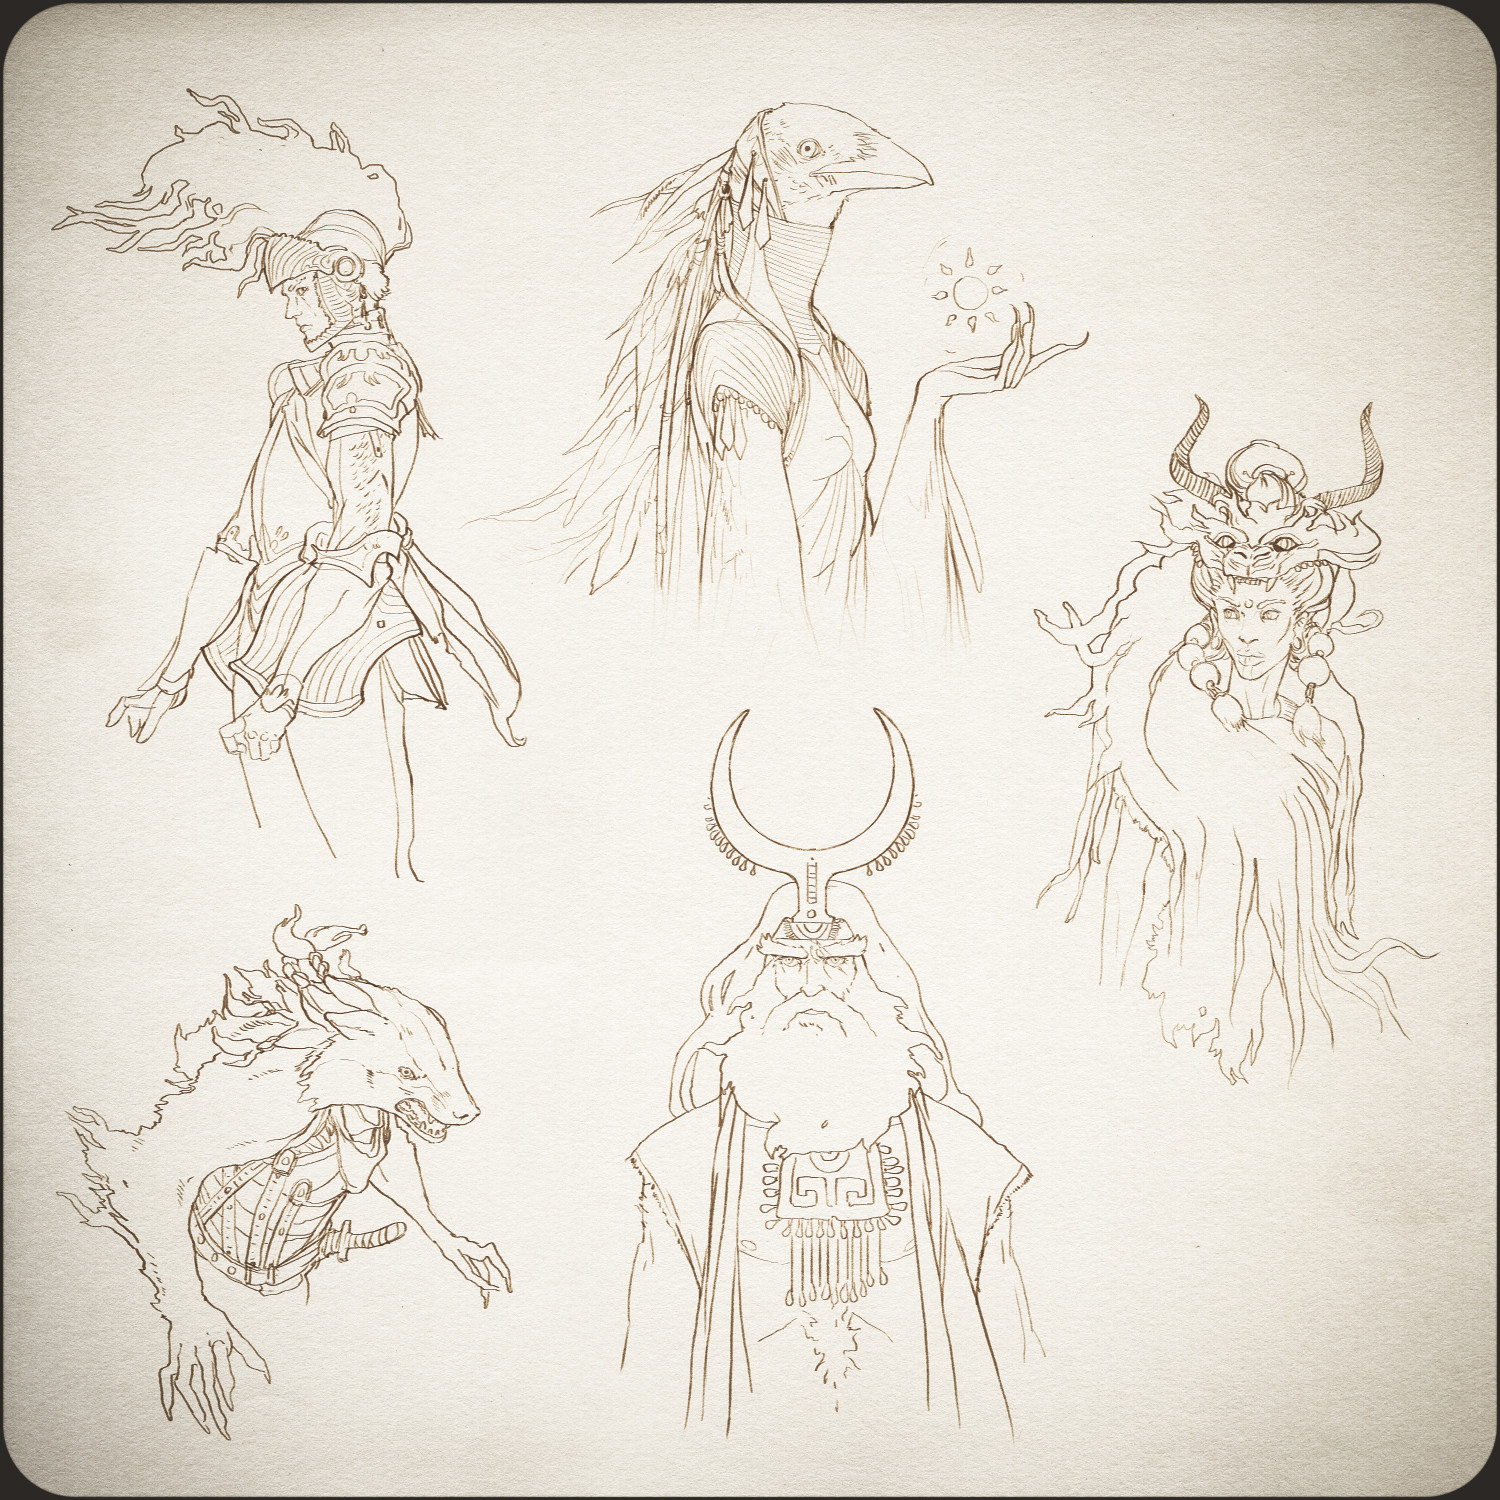 The Well - Previs Character Concepts